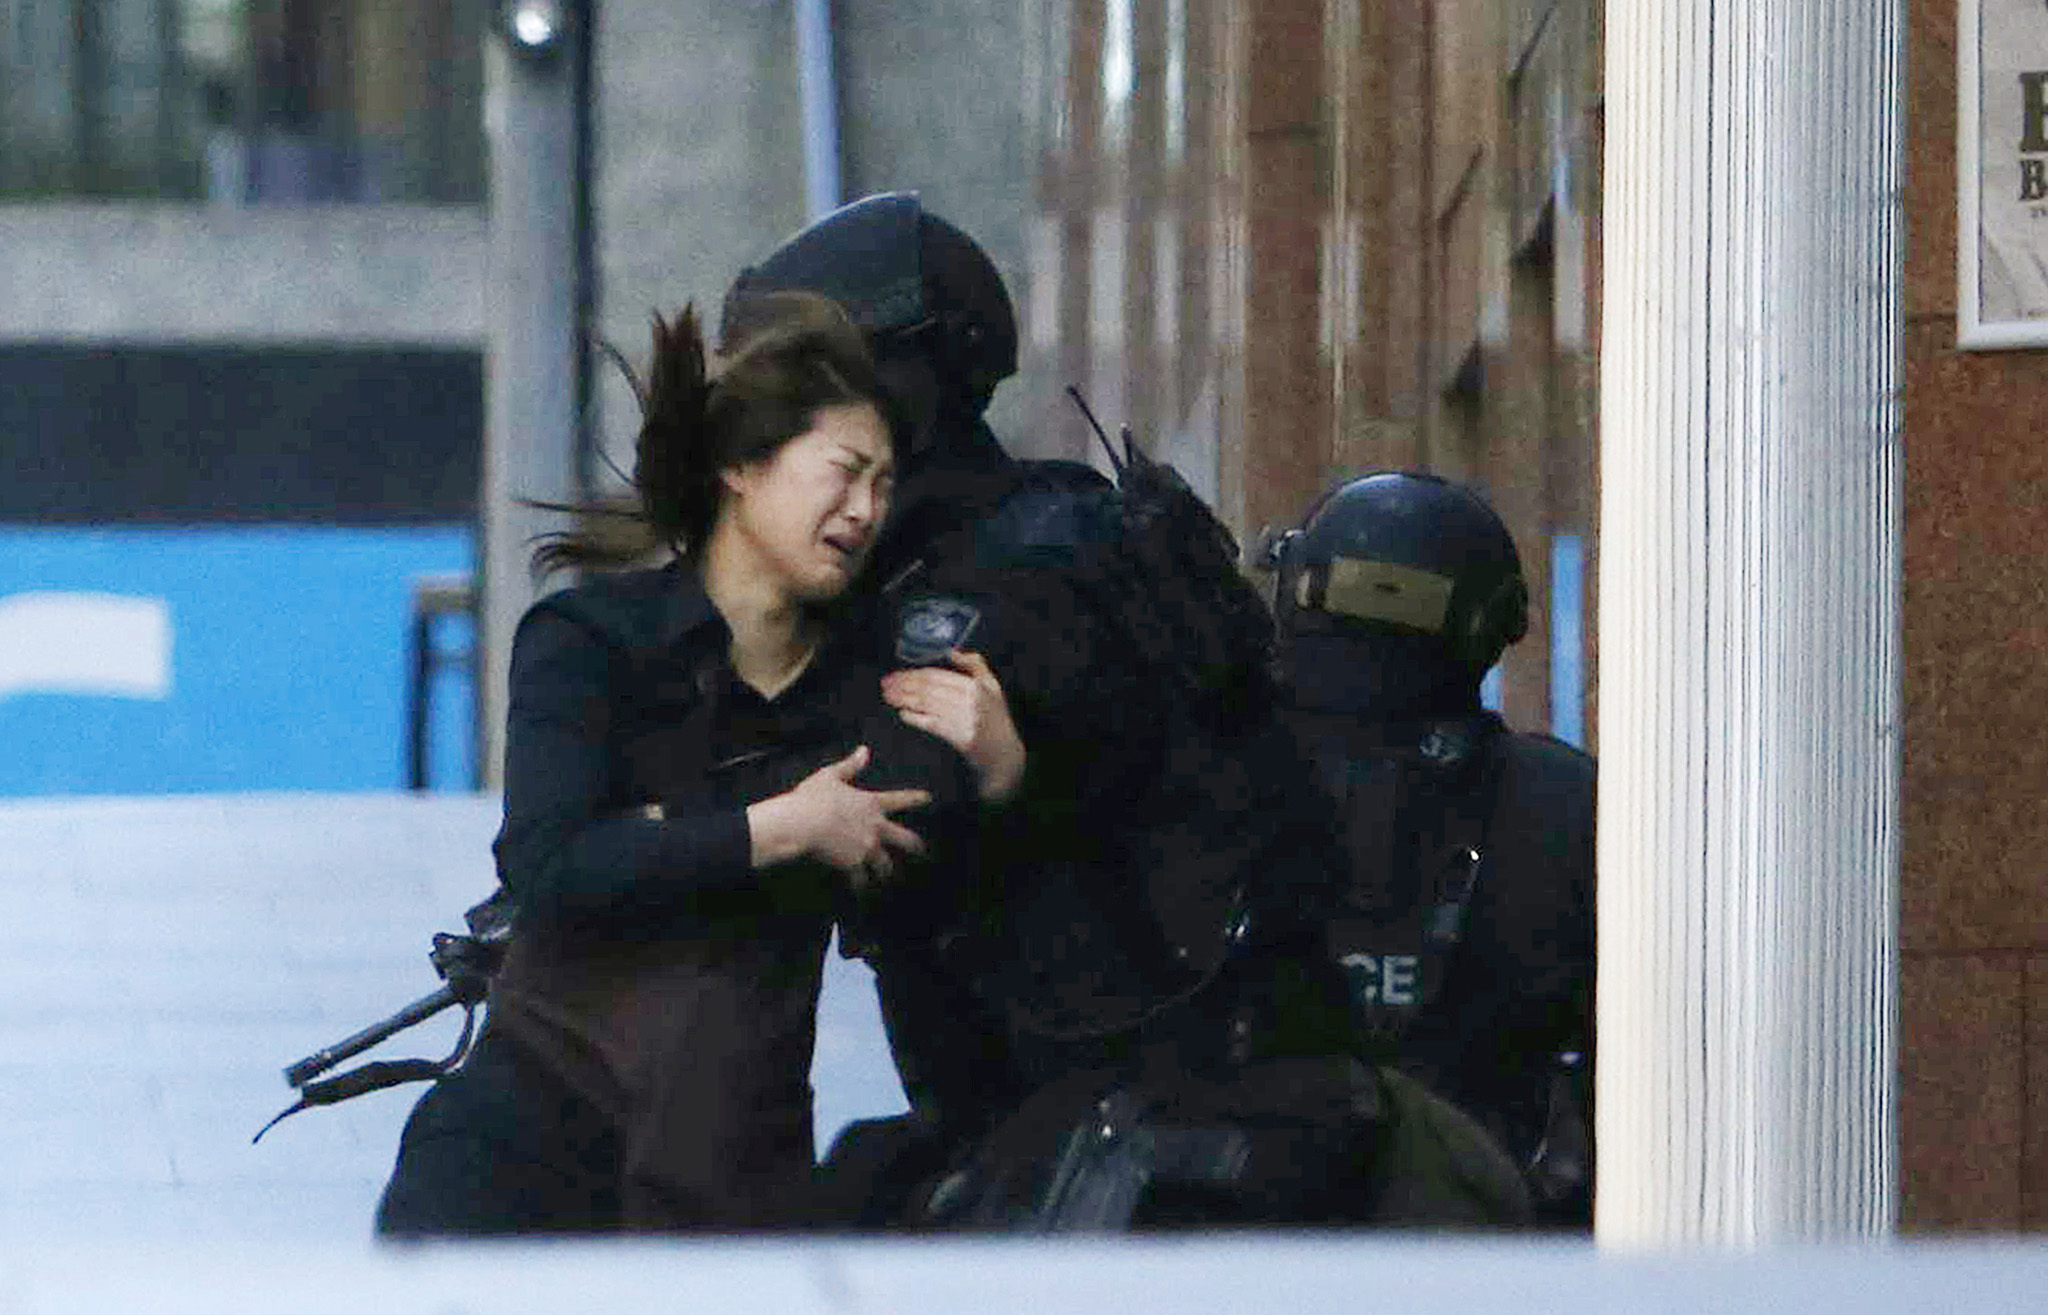 "REUTERS PICTURE HIGHLIGHT...ATTENTION EDITORS - REUTERS PICTURE HIGHLIGHT TRANSMITTED BY 0730 GMT ON DECEMBER 15, 2014    TBW26 - A hostage runs towards a police officer outside Lindt cafe, where other hostages are being held, in Martin Place in central Sydney December 15, 2014. REUTERS/Jason Reed     REUTERS NEWS PICTURES HAS NOW MADE IT EASIER TO FIND THE BEST PHOTOS FROM THE MOST IMPORTANT STORIES AND TOP STANDALONES EACH DAY. Search for ""TPX"" in the IPTC Supplemental Category field or ""IMAGES OF THE DAY"" in the Caption field and you will find a selection of 80-100 of our daily Top Pictures.    REUTERS NEWS PICTURES.     TEMPLATE OUT"